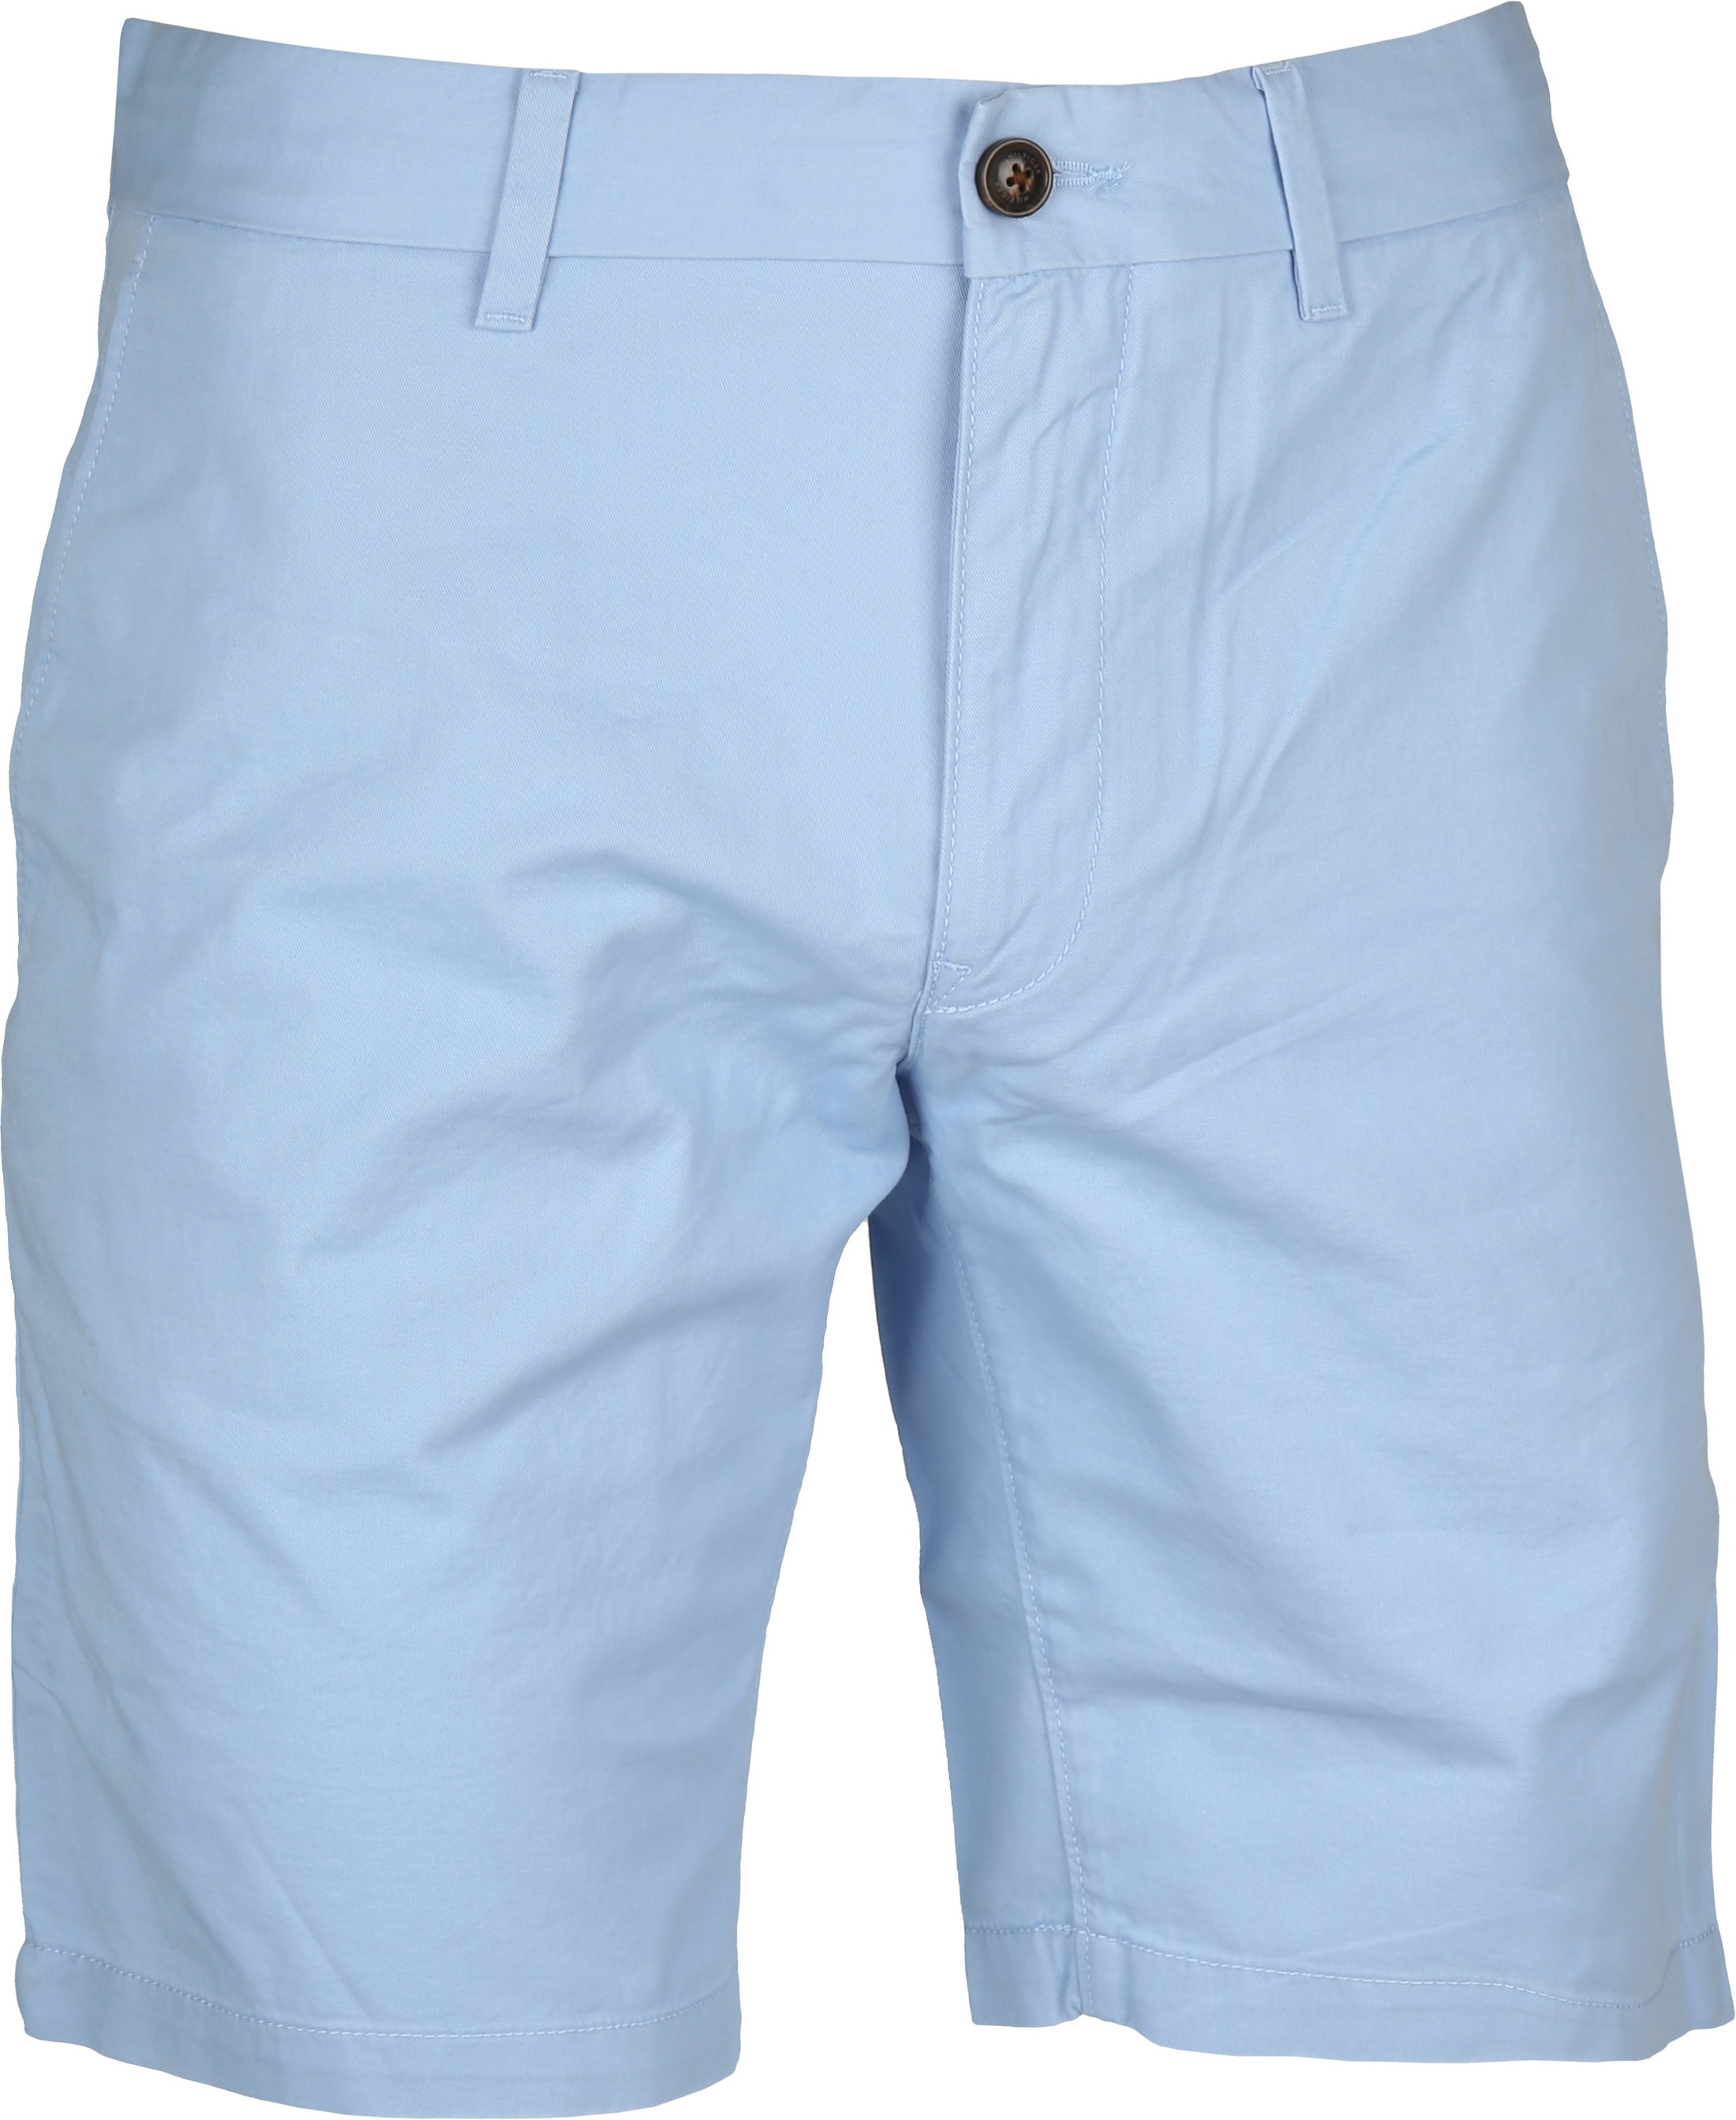 Tommy Hilfiger Short Brooklyn Chambray Blue foto 0